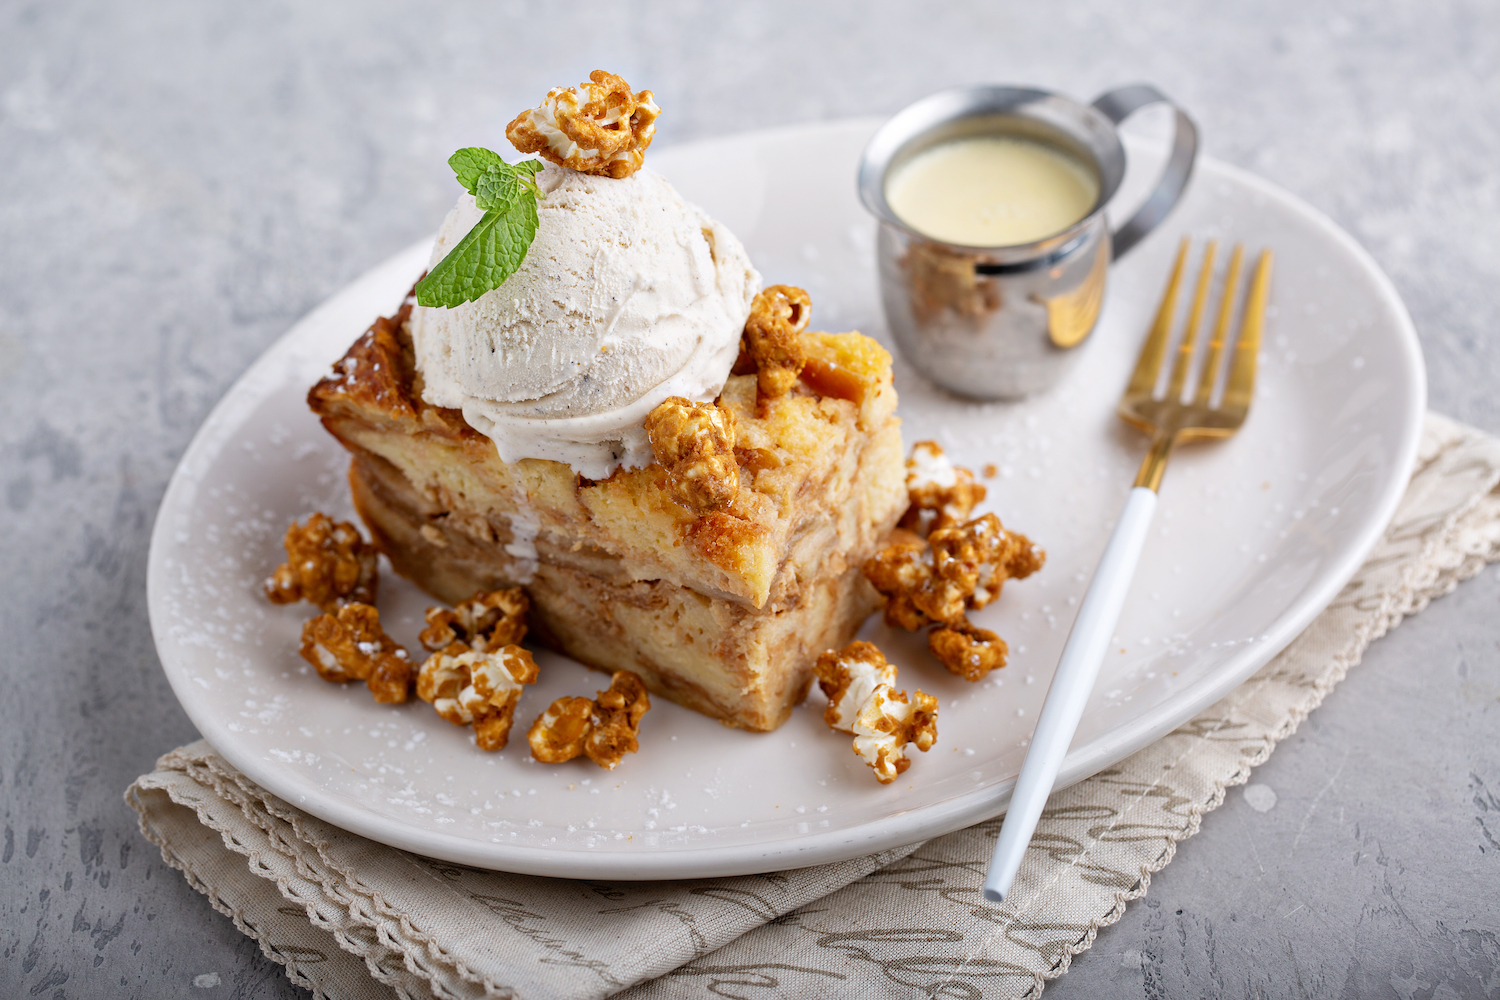 Caramel apple bread pudding with ice cream and popcorn, fall dessert.